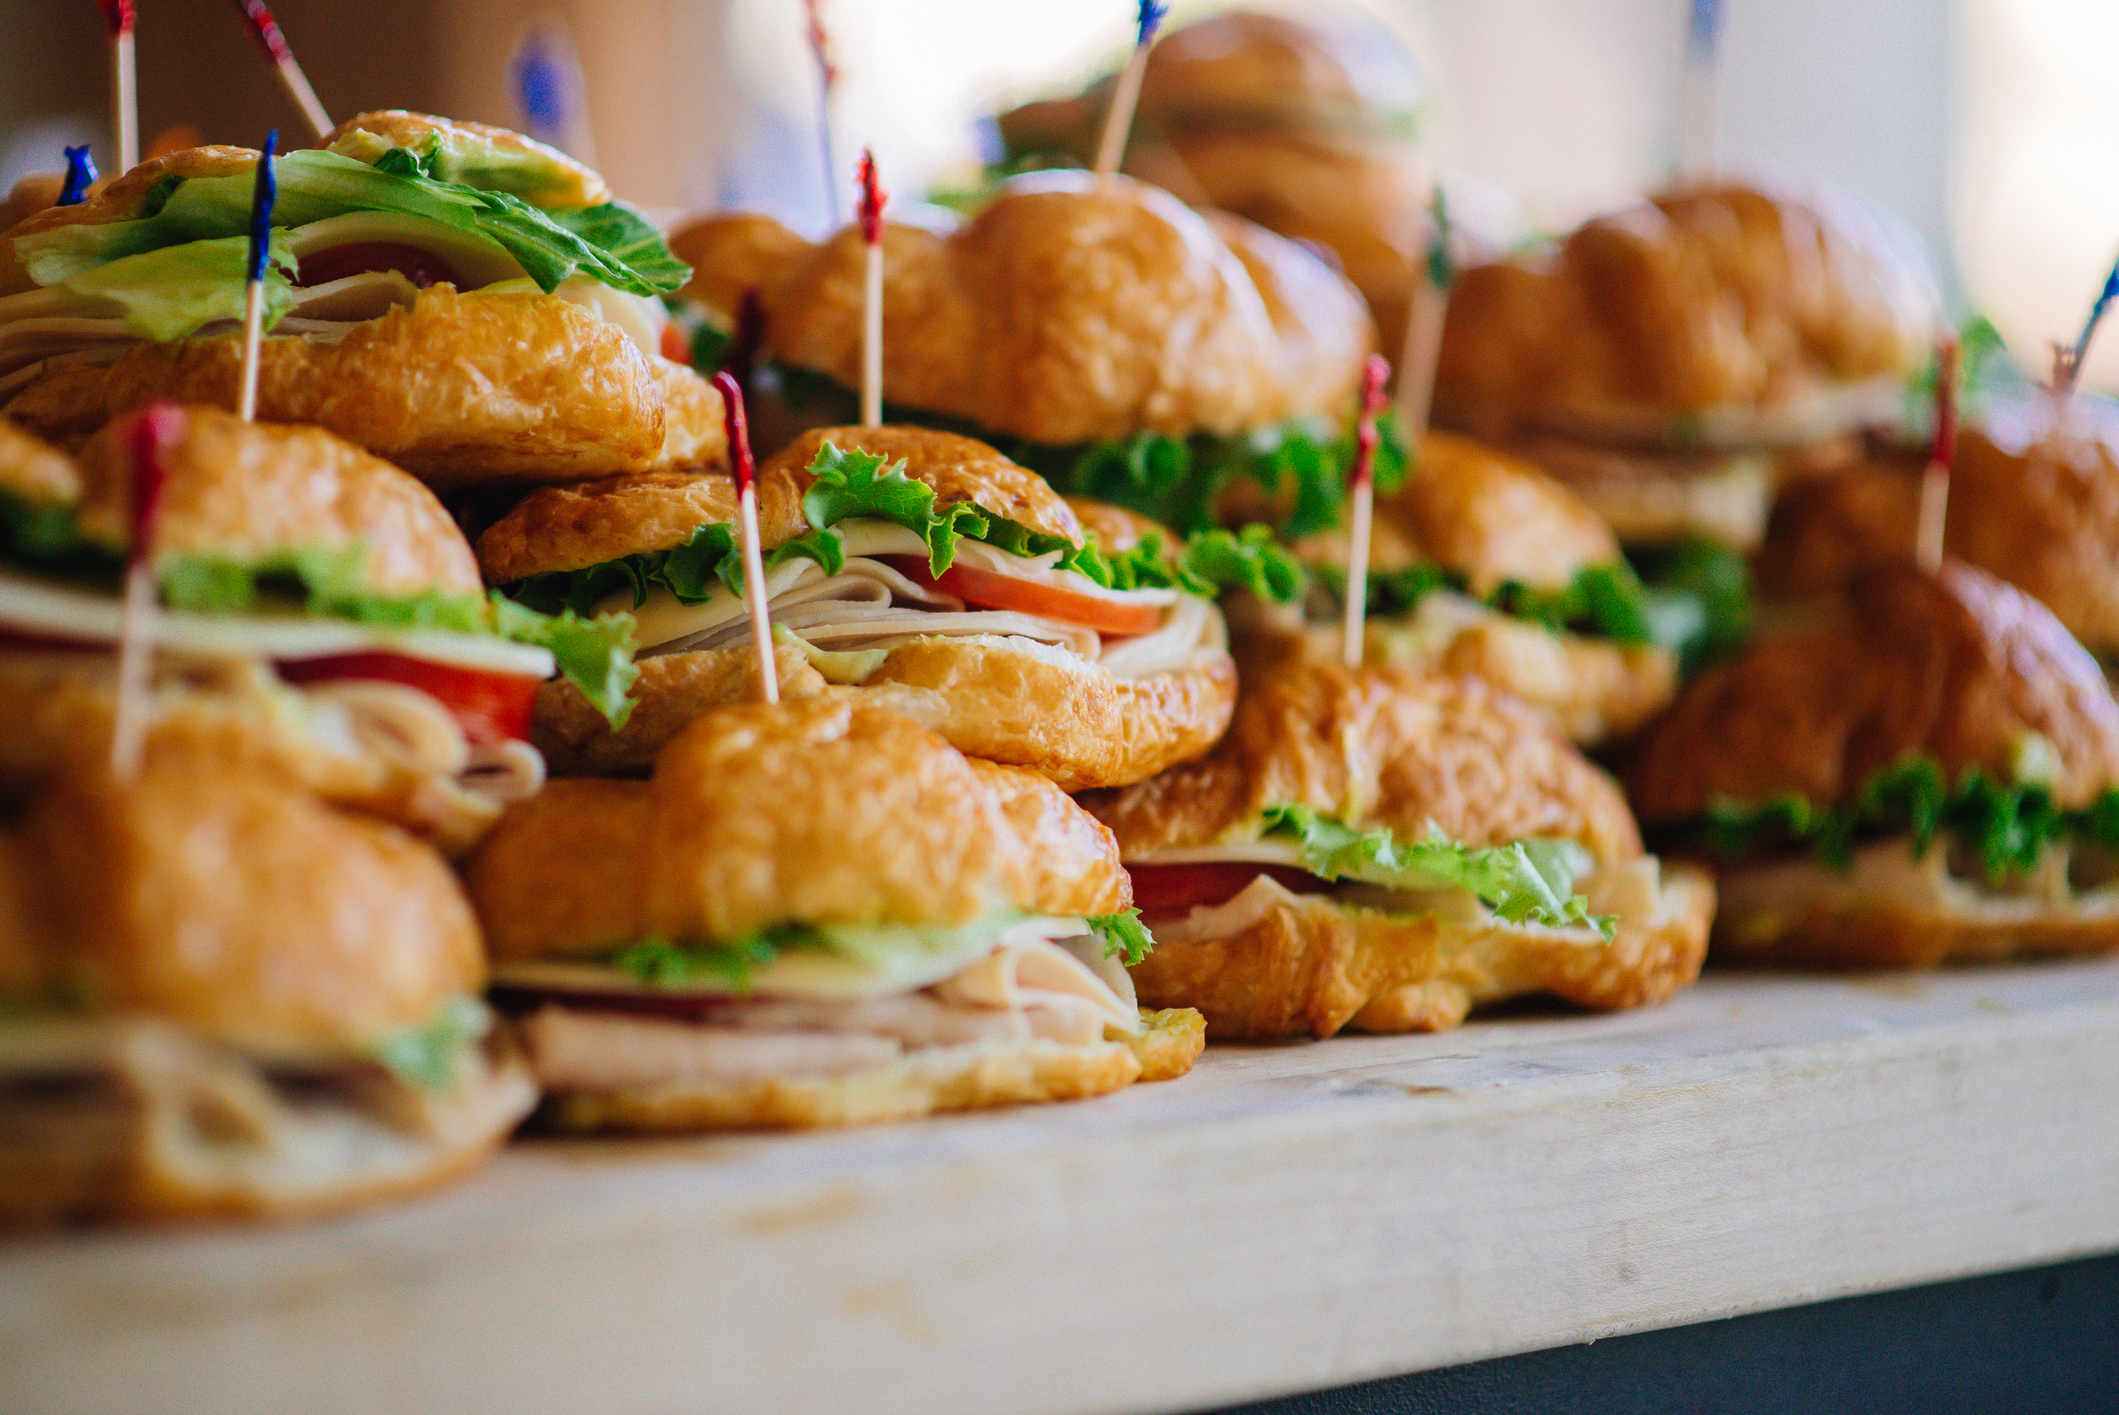 Catering & Food Service - The food service industry is a face paced, complex industry. Find out more about our insurance programs that will keep up.